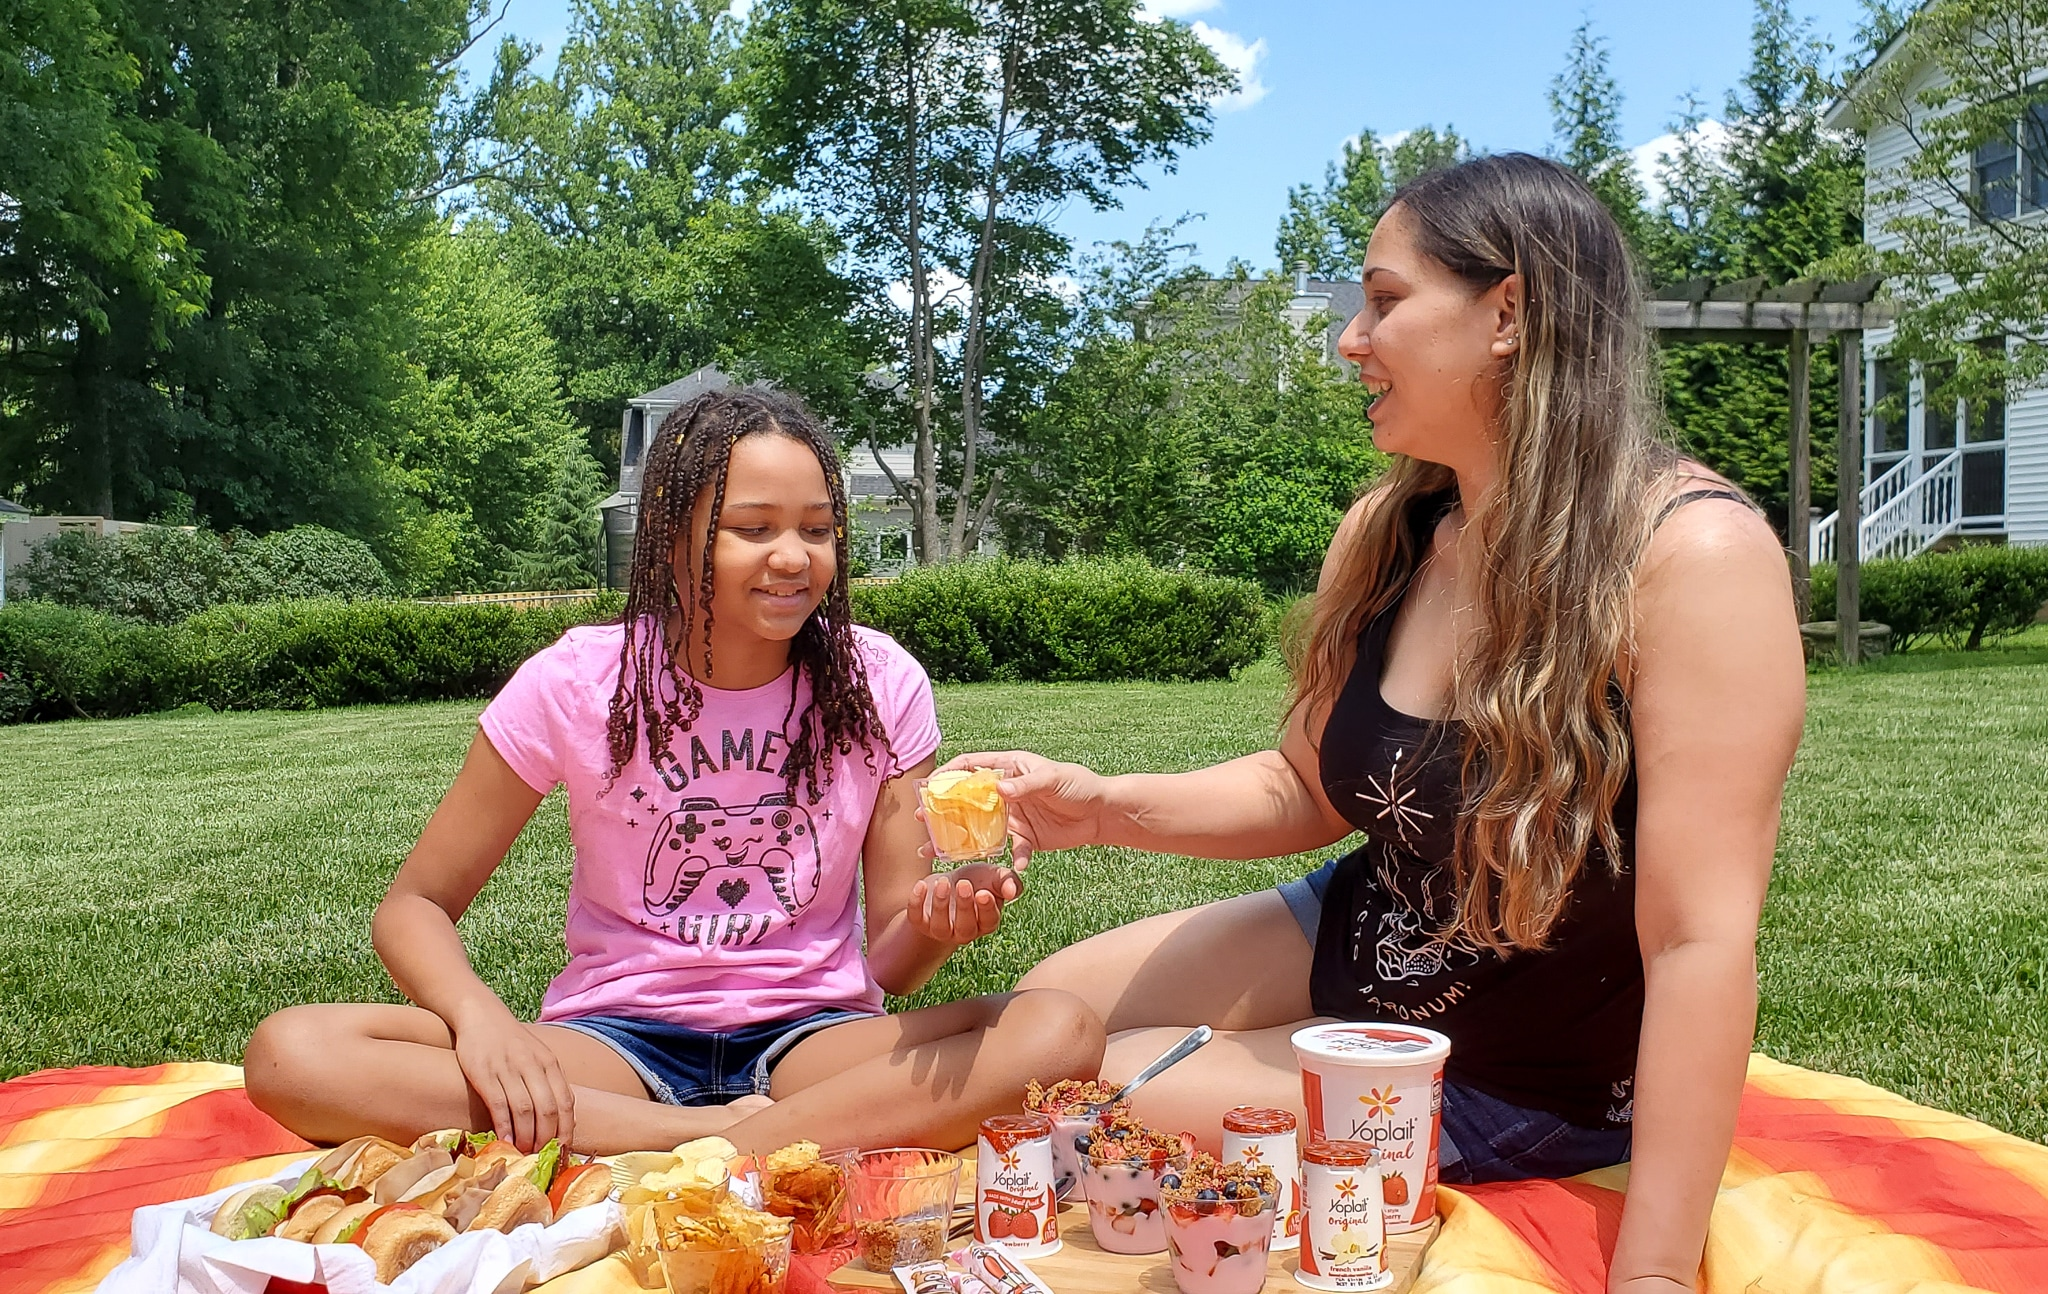 Backyard Picnic with Yoplait Mom and Daughter. Grab your picnic baskets! It's time to host your very own backyard picnic featuring the foods your family loves. No need to leave home for this bunch of fun, just pick a date and then prep your picnic baskets.